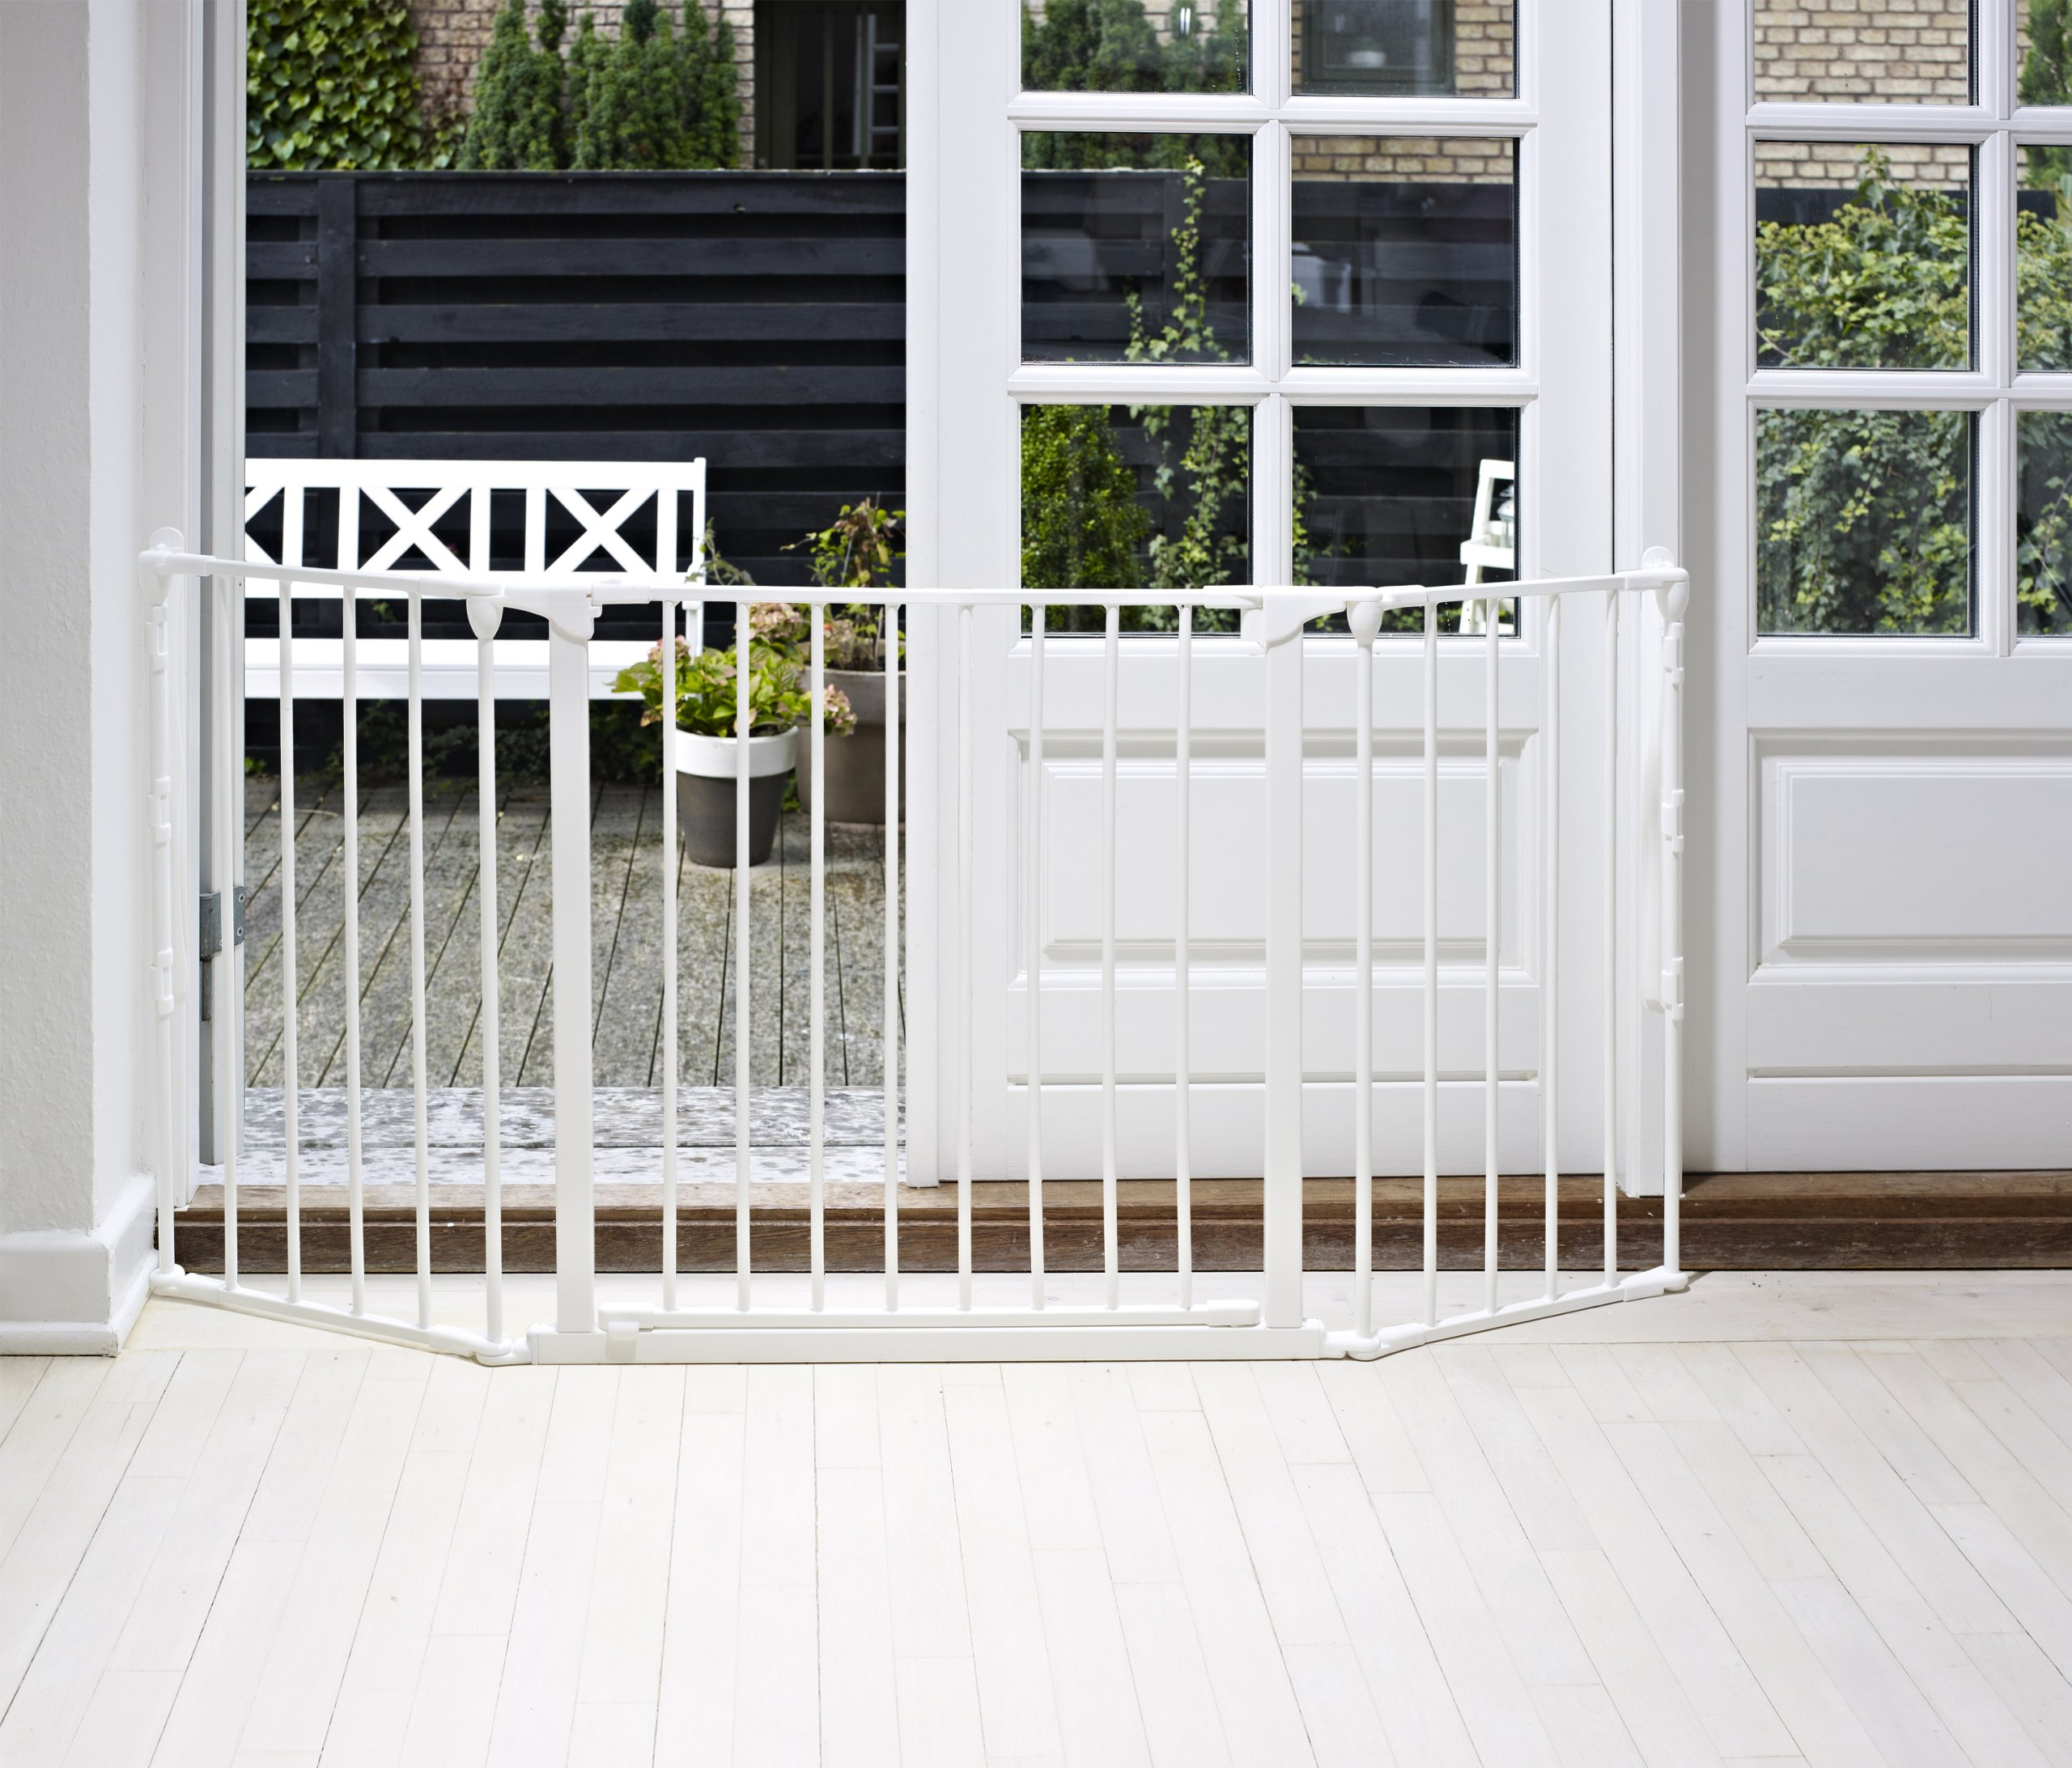 BabyDan Configure (Medium 90-146cm, White)  Only configure system fulfilling newest European safety standard Multi purpose room divider and gate for wider openings Flexible and easy to fit 7